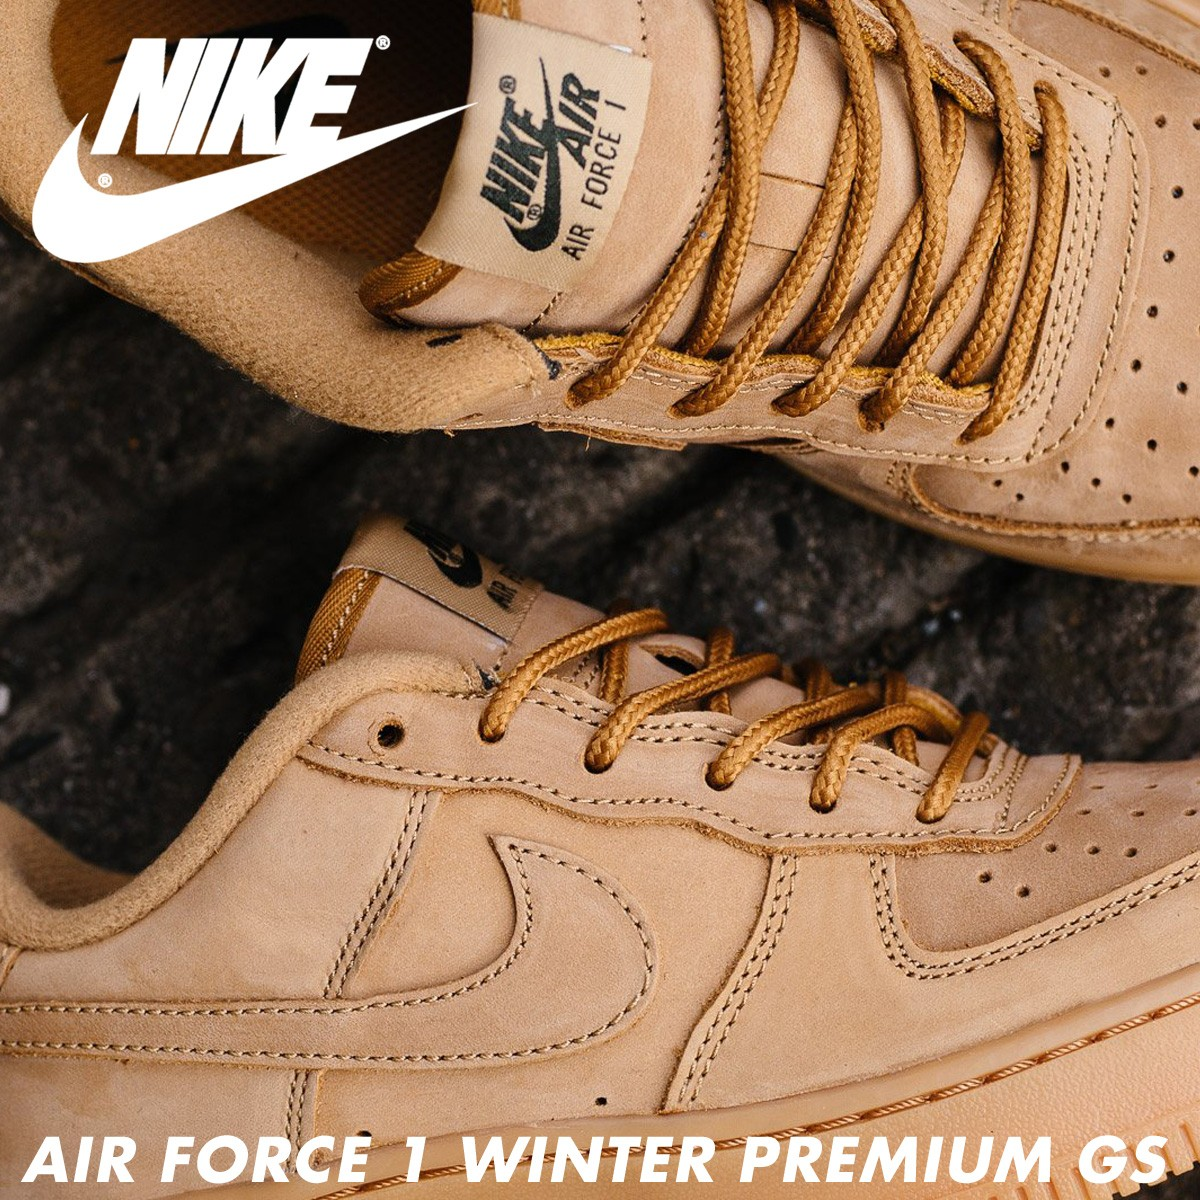 a631c455de50 NIKE AIR FORCE 1 LOW WINTER PREMIUM GS WHEAT Nike air force 1 lady s  sneakers 943